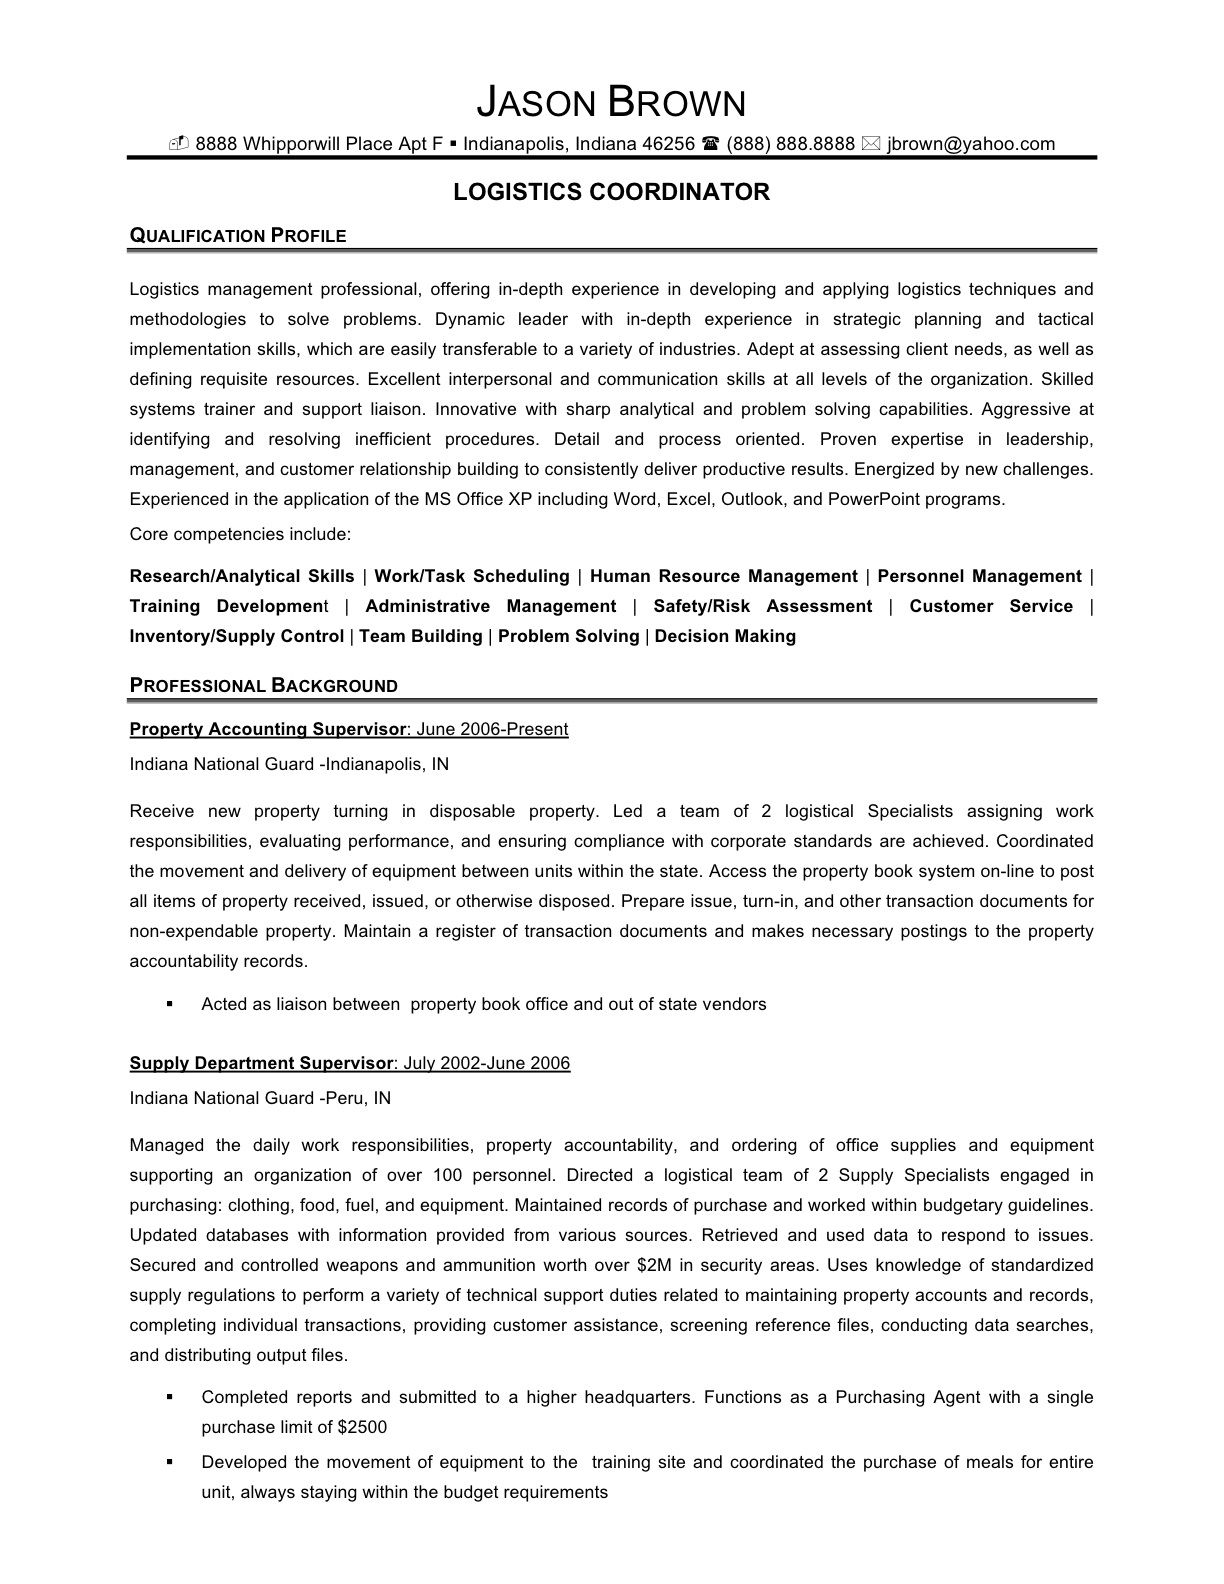 Office Coordinator Resume Sample Free Office Coordinator Resume Example,  Unforgettable Administrative Coordinator Resume Examples To Stand, ...  Office Coordinator Resume